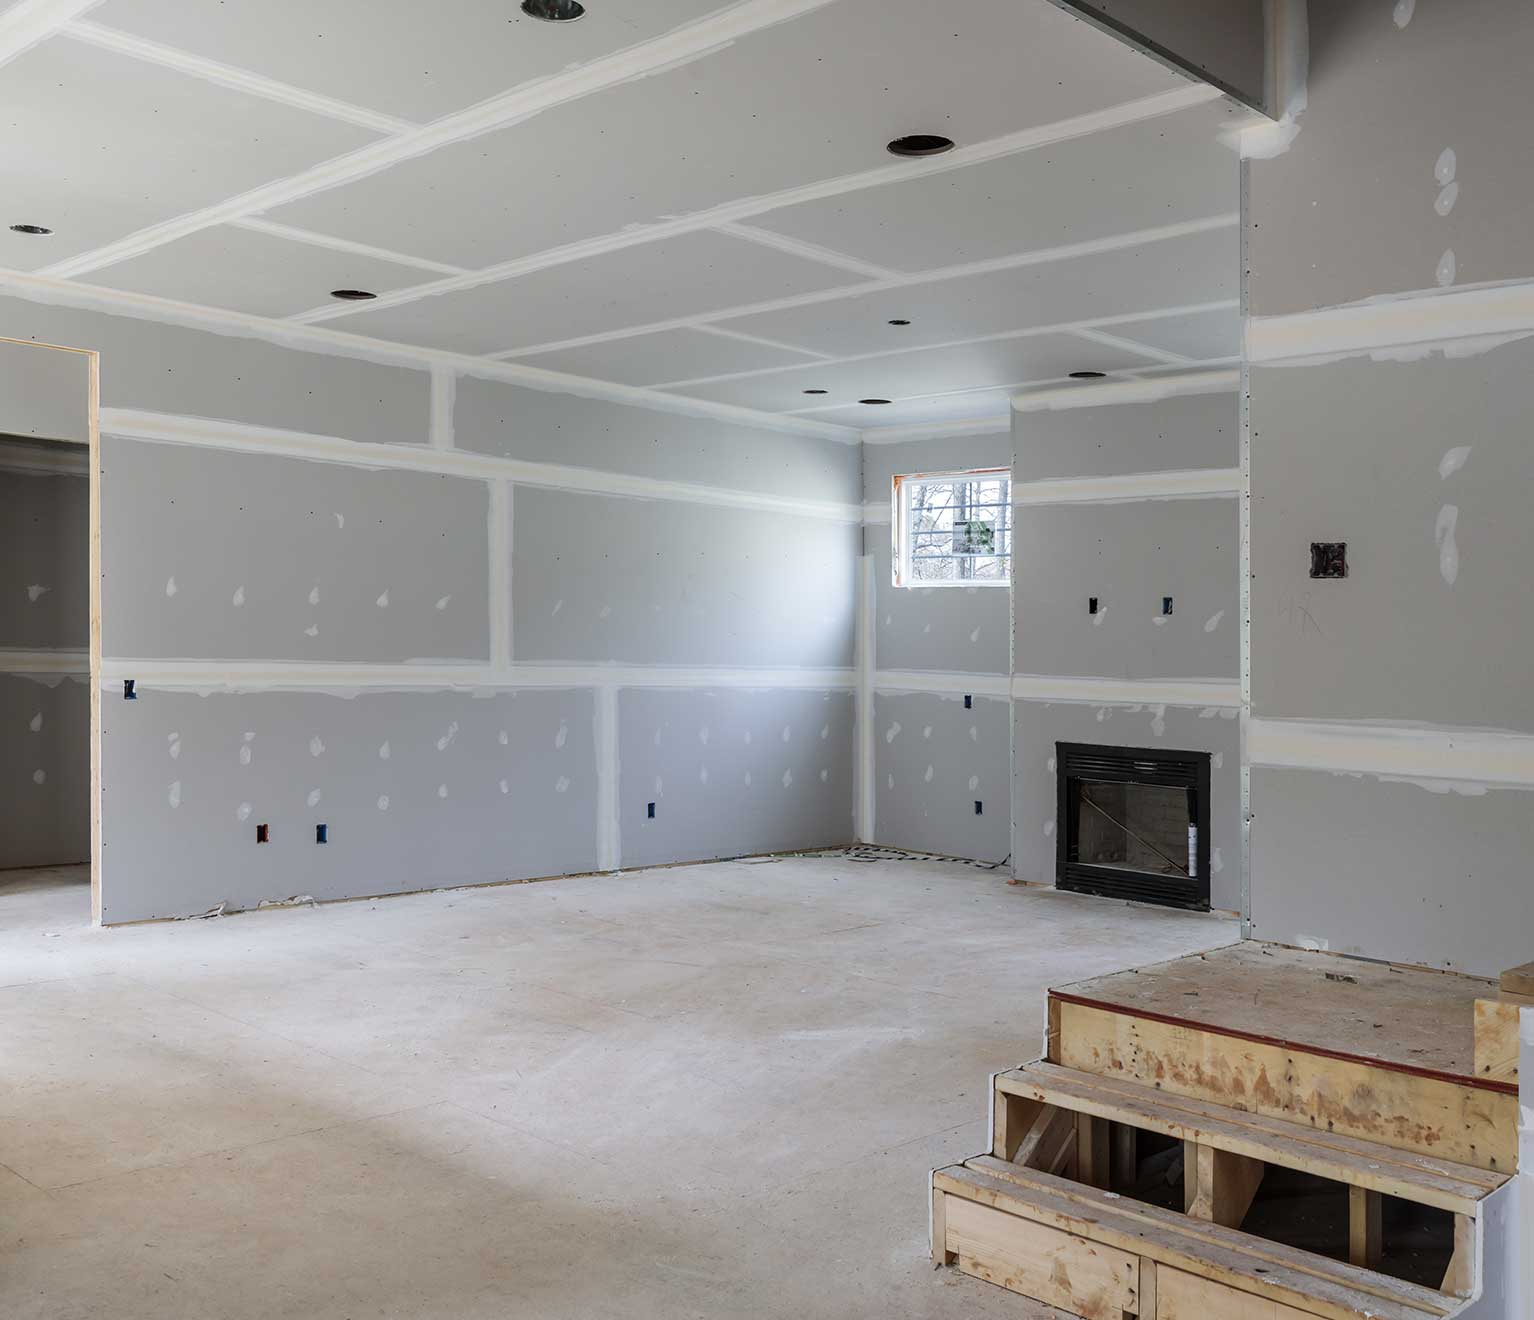 Inexpensive Basement Finishes American Family Insurance